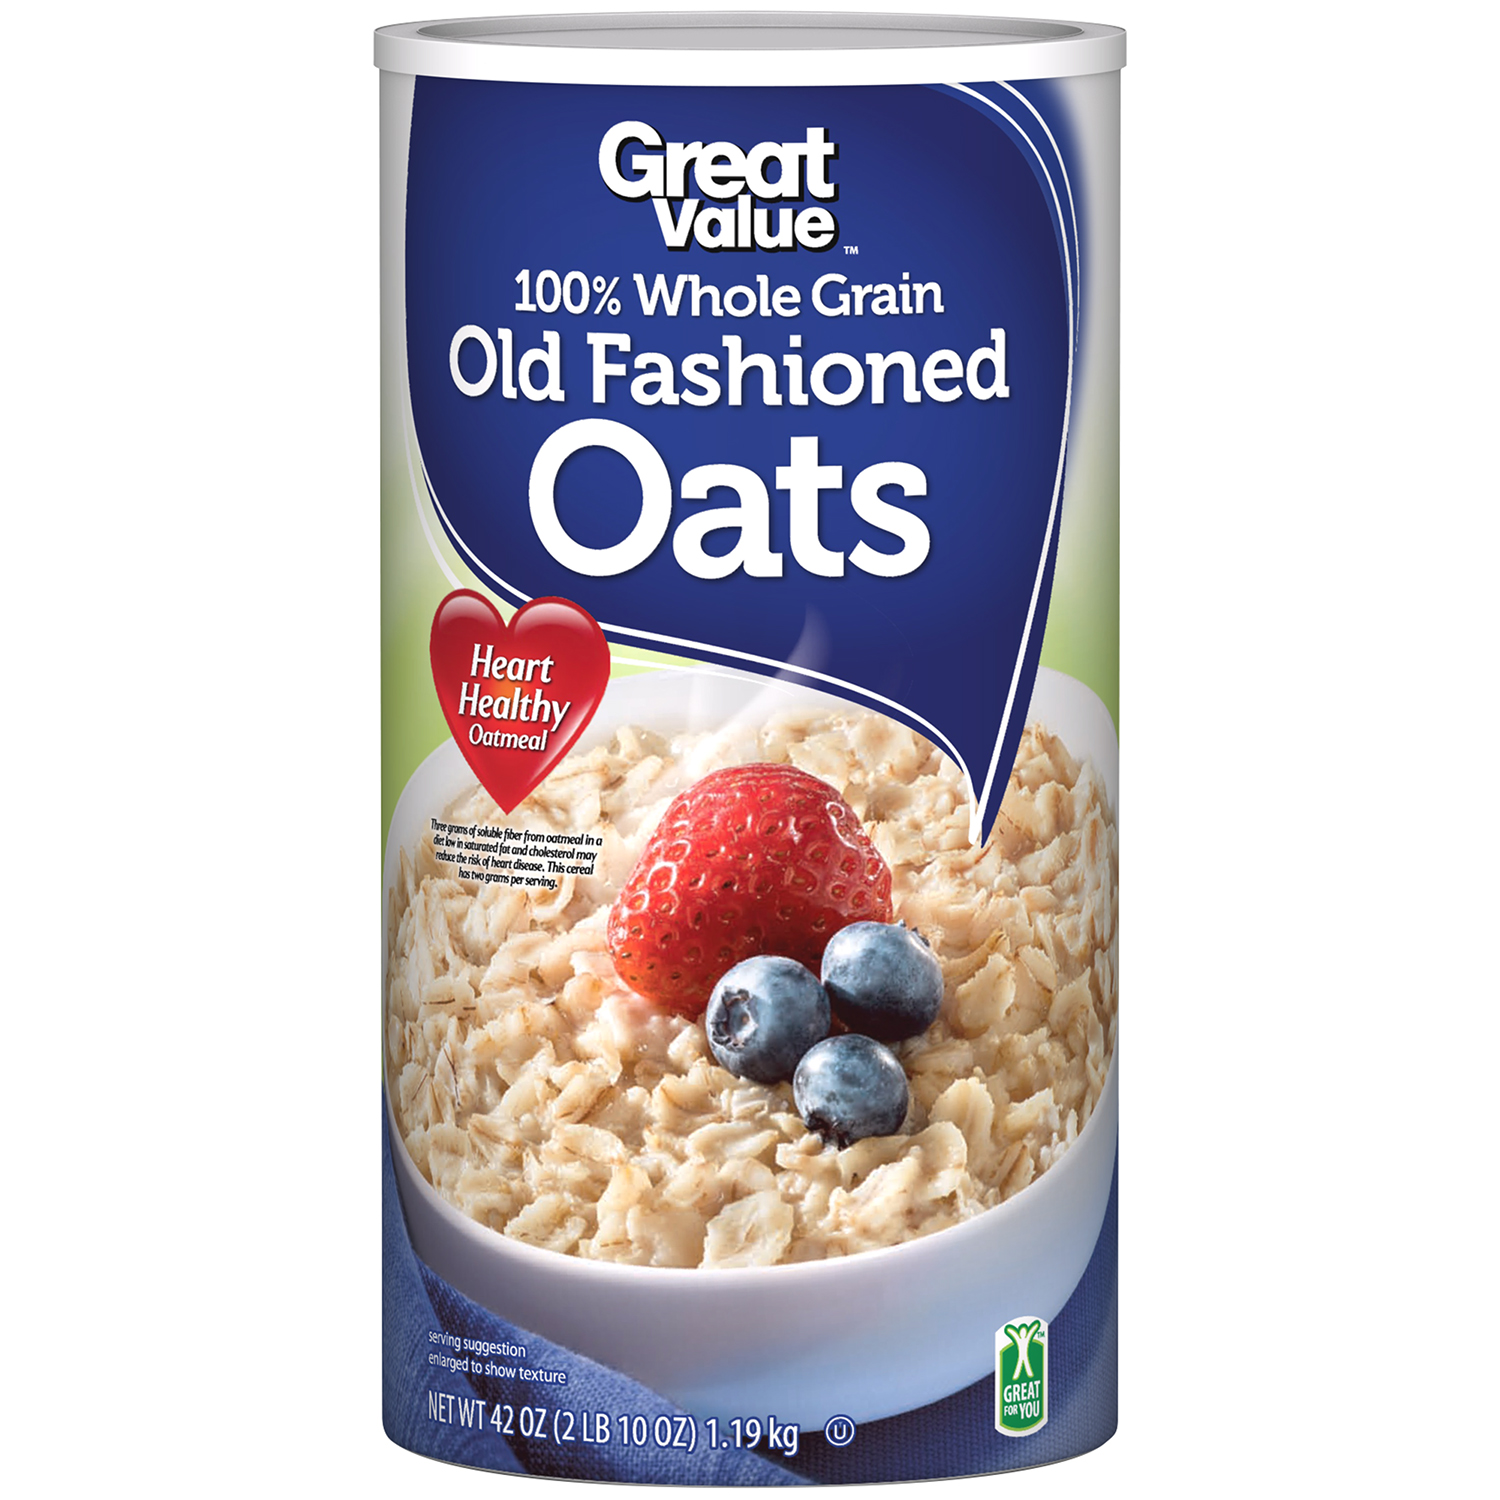 Great Value 100% Whole Grain Old Fashioned Oats 42 oz Canister